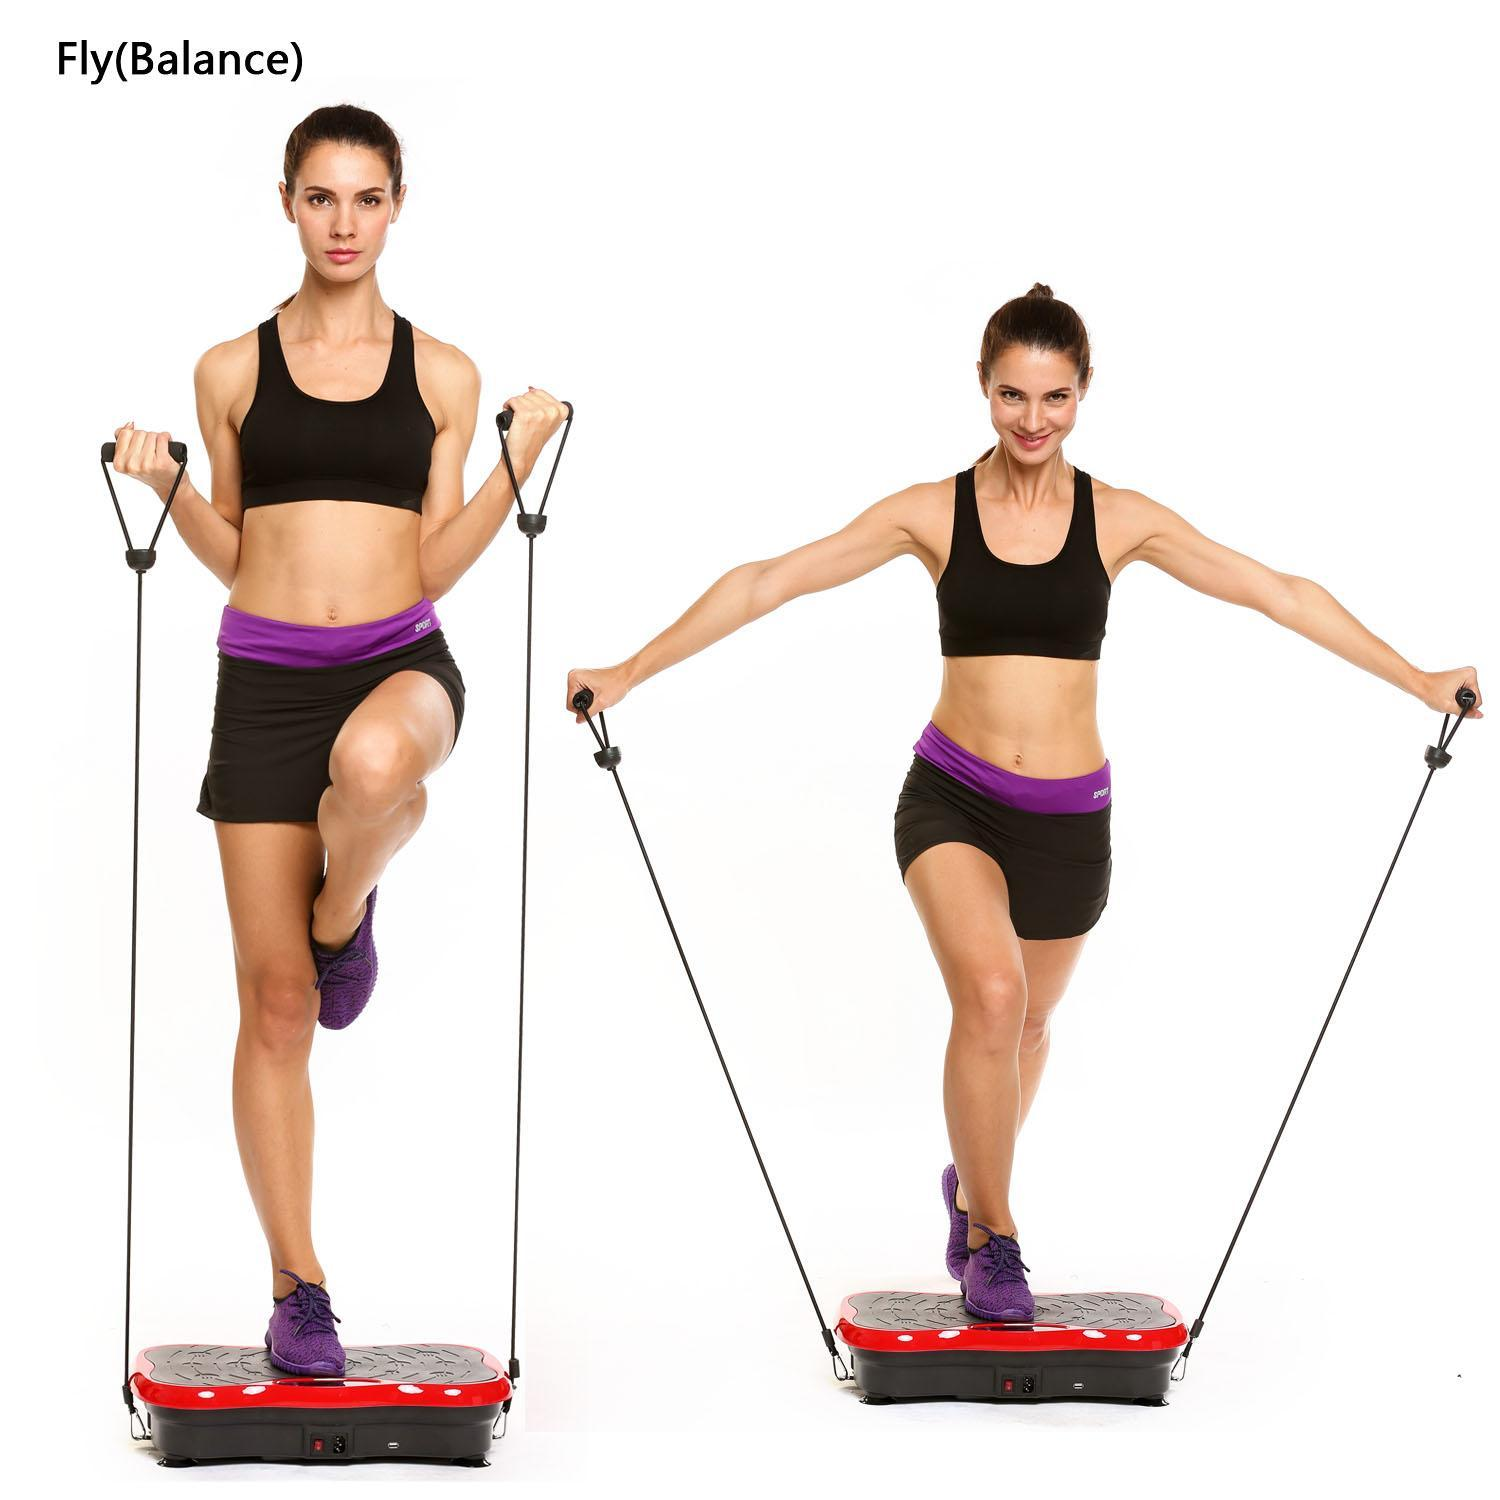 BETT Whole-body Platform Fitness Vibration Machine Workou...